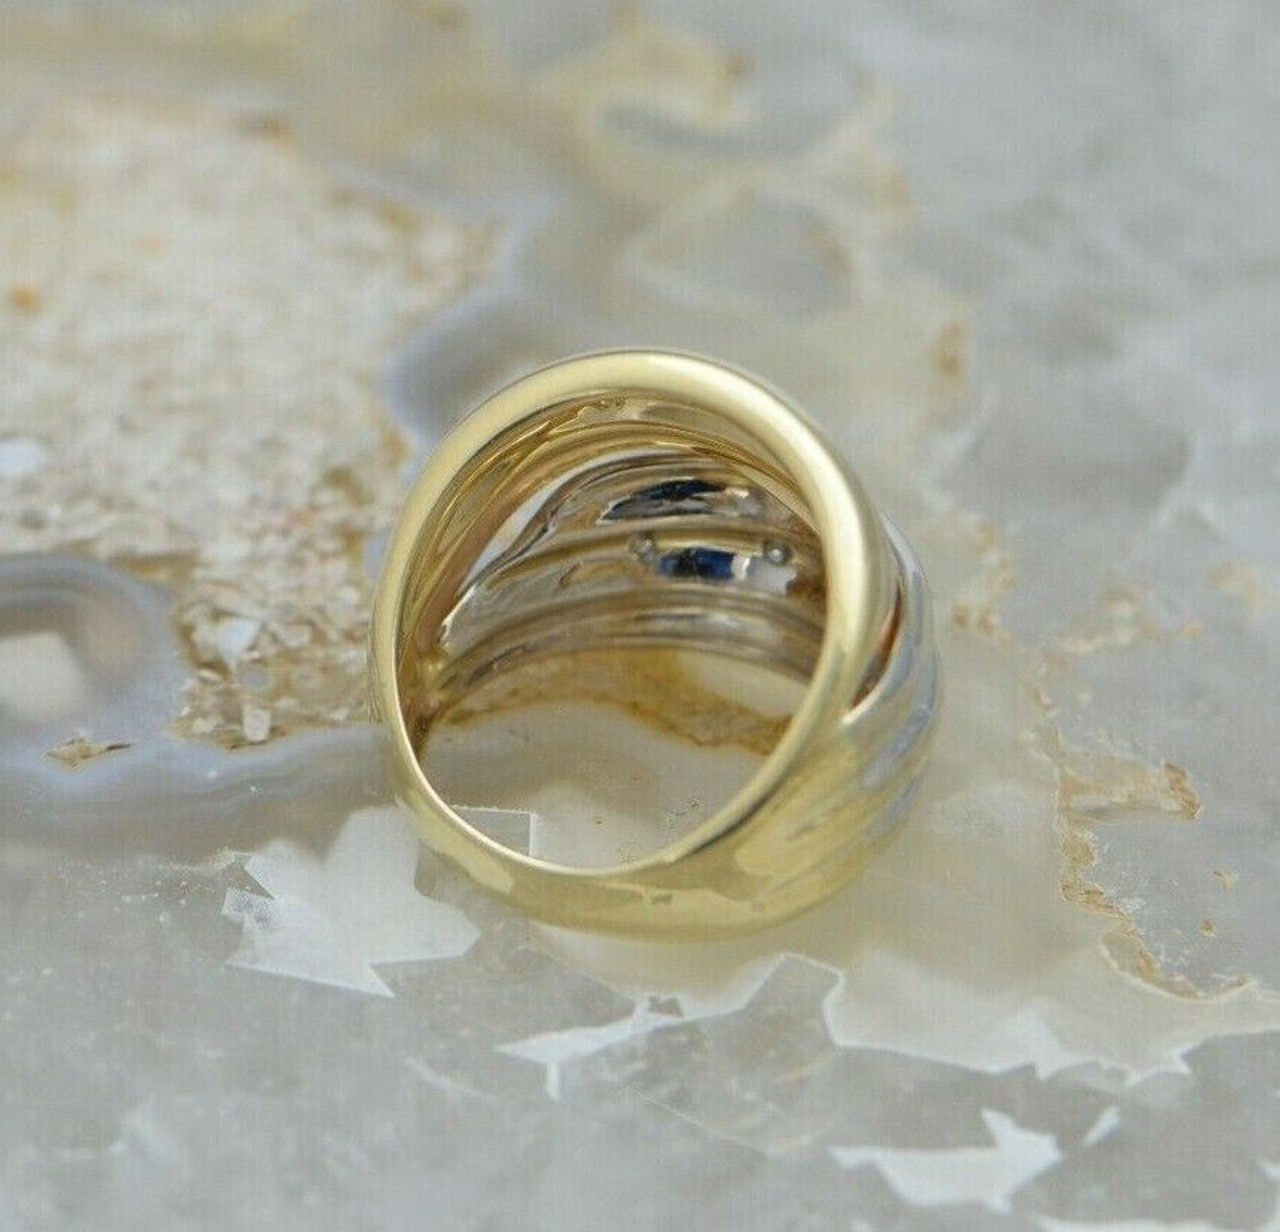 Stunning 14k Yellow Gold CZ Deco Cocktail Ring Size 6.25